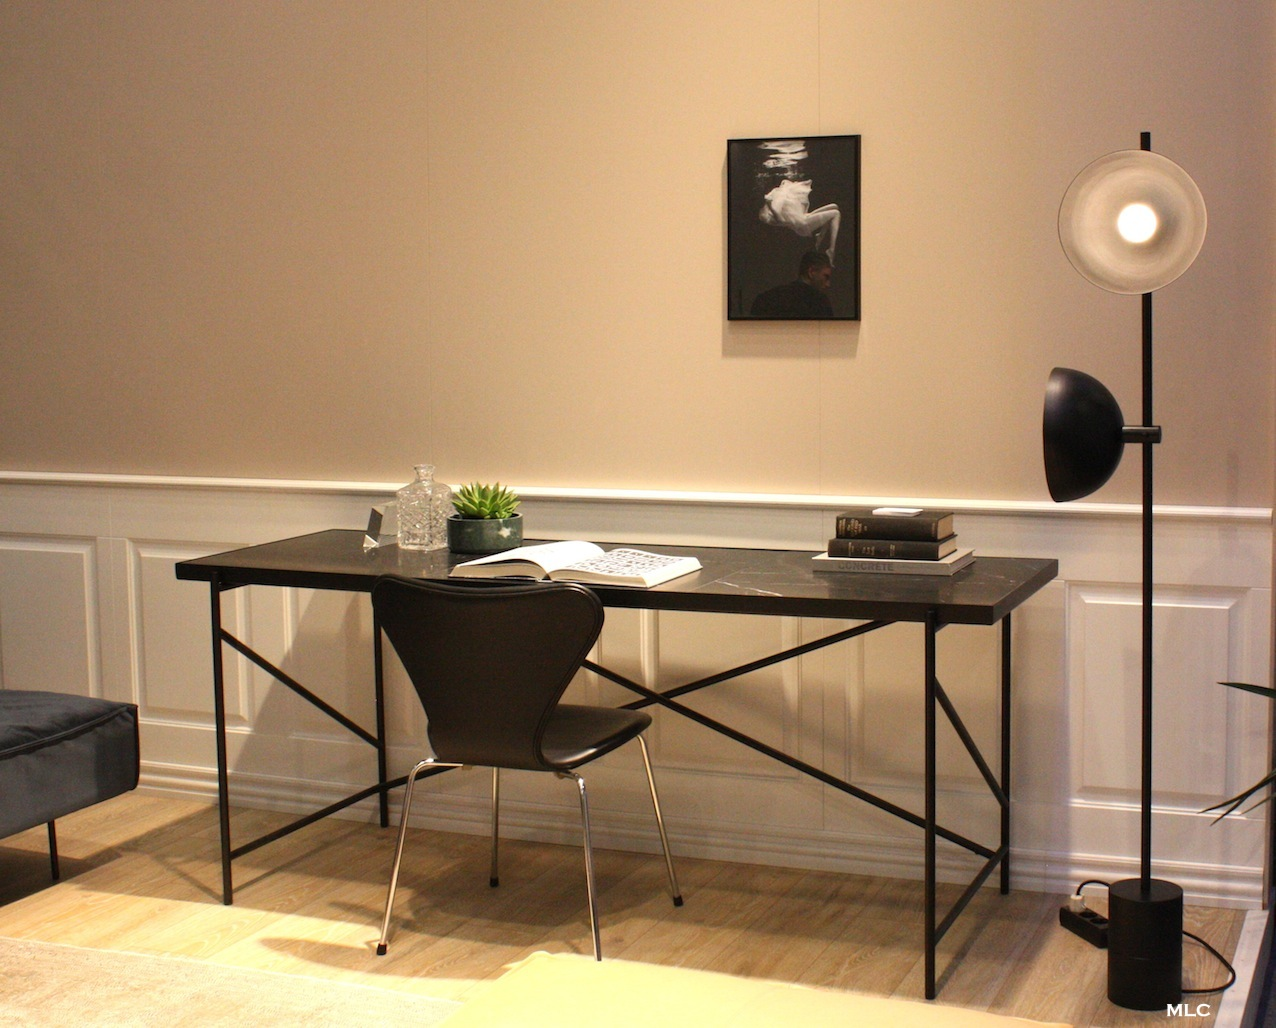 Table Console Archives Le Blog D Co De Mlc # Image D'Un Jolie Bureau Avec Bcp De Meubles